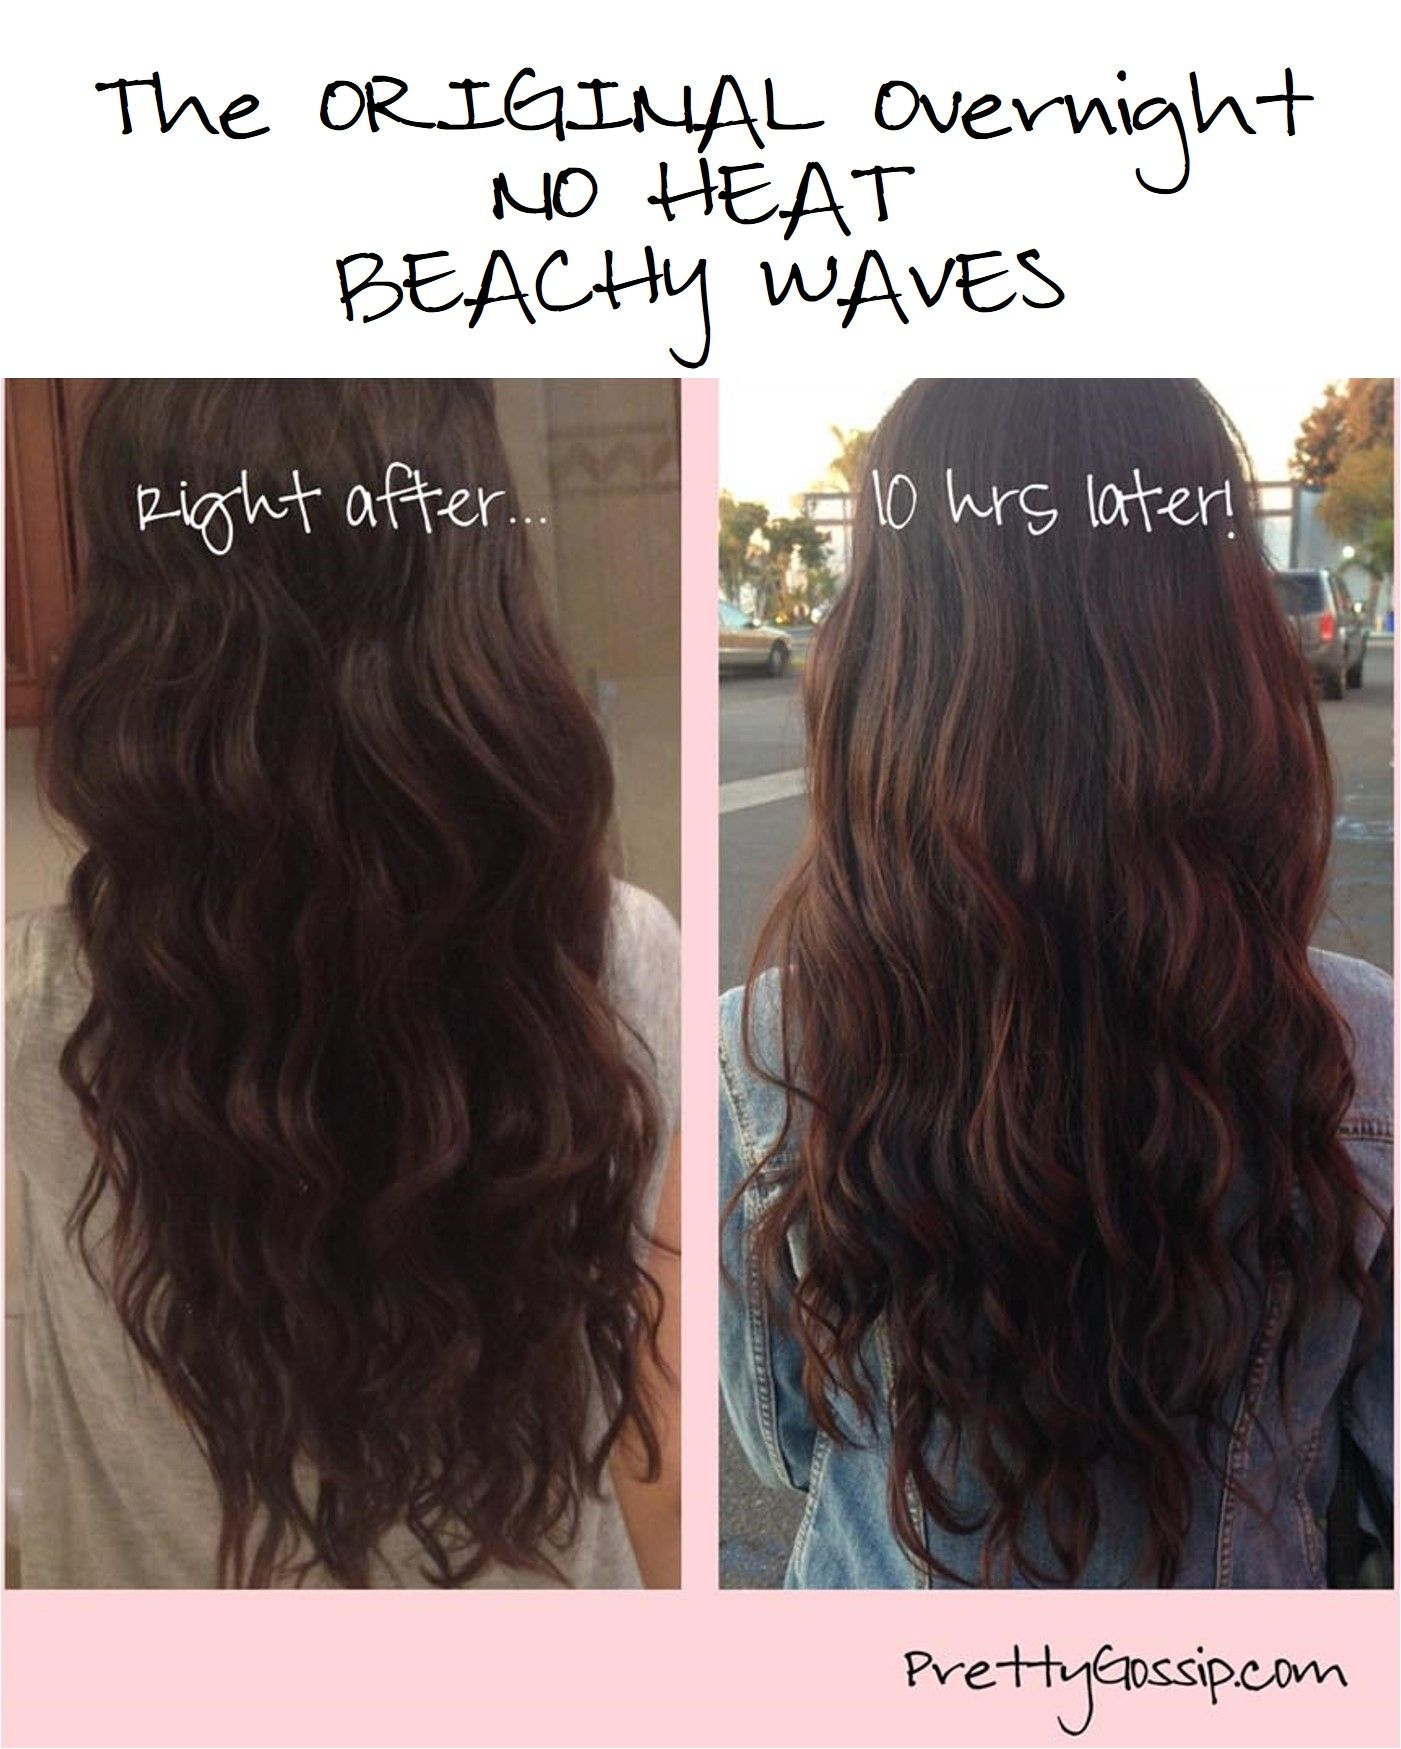 NO HEAT Overnight Beachy Waves Worth a trythough I doubt my